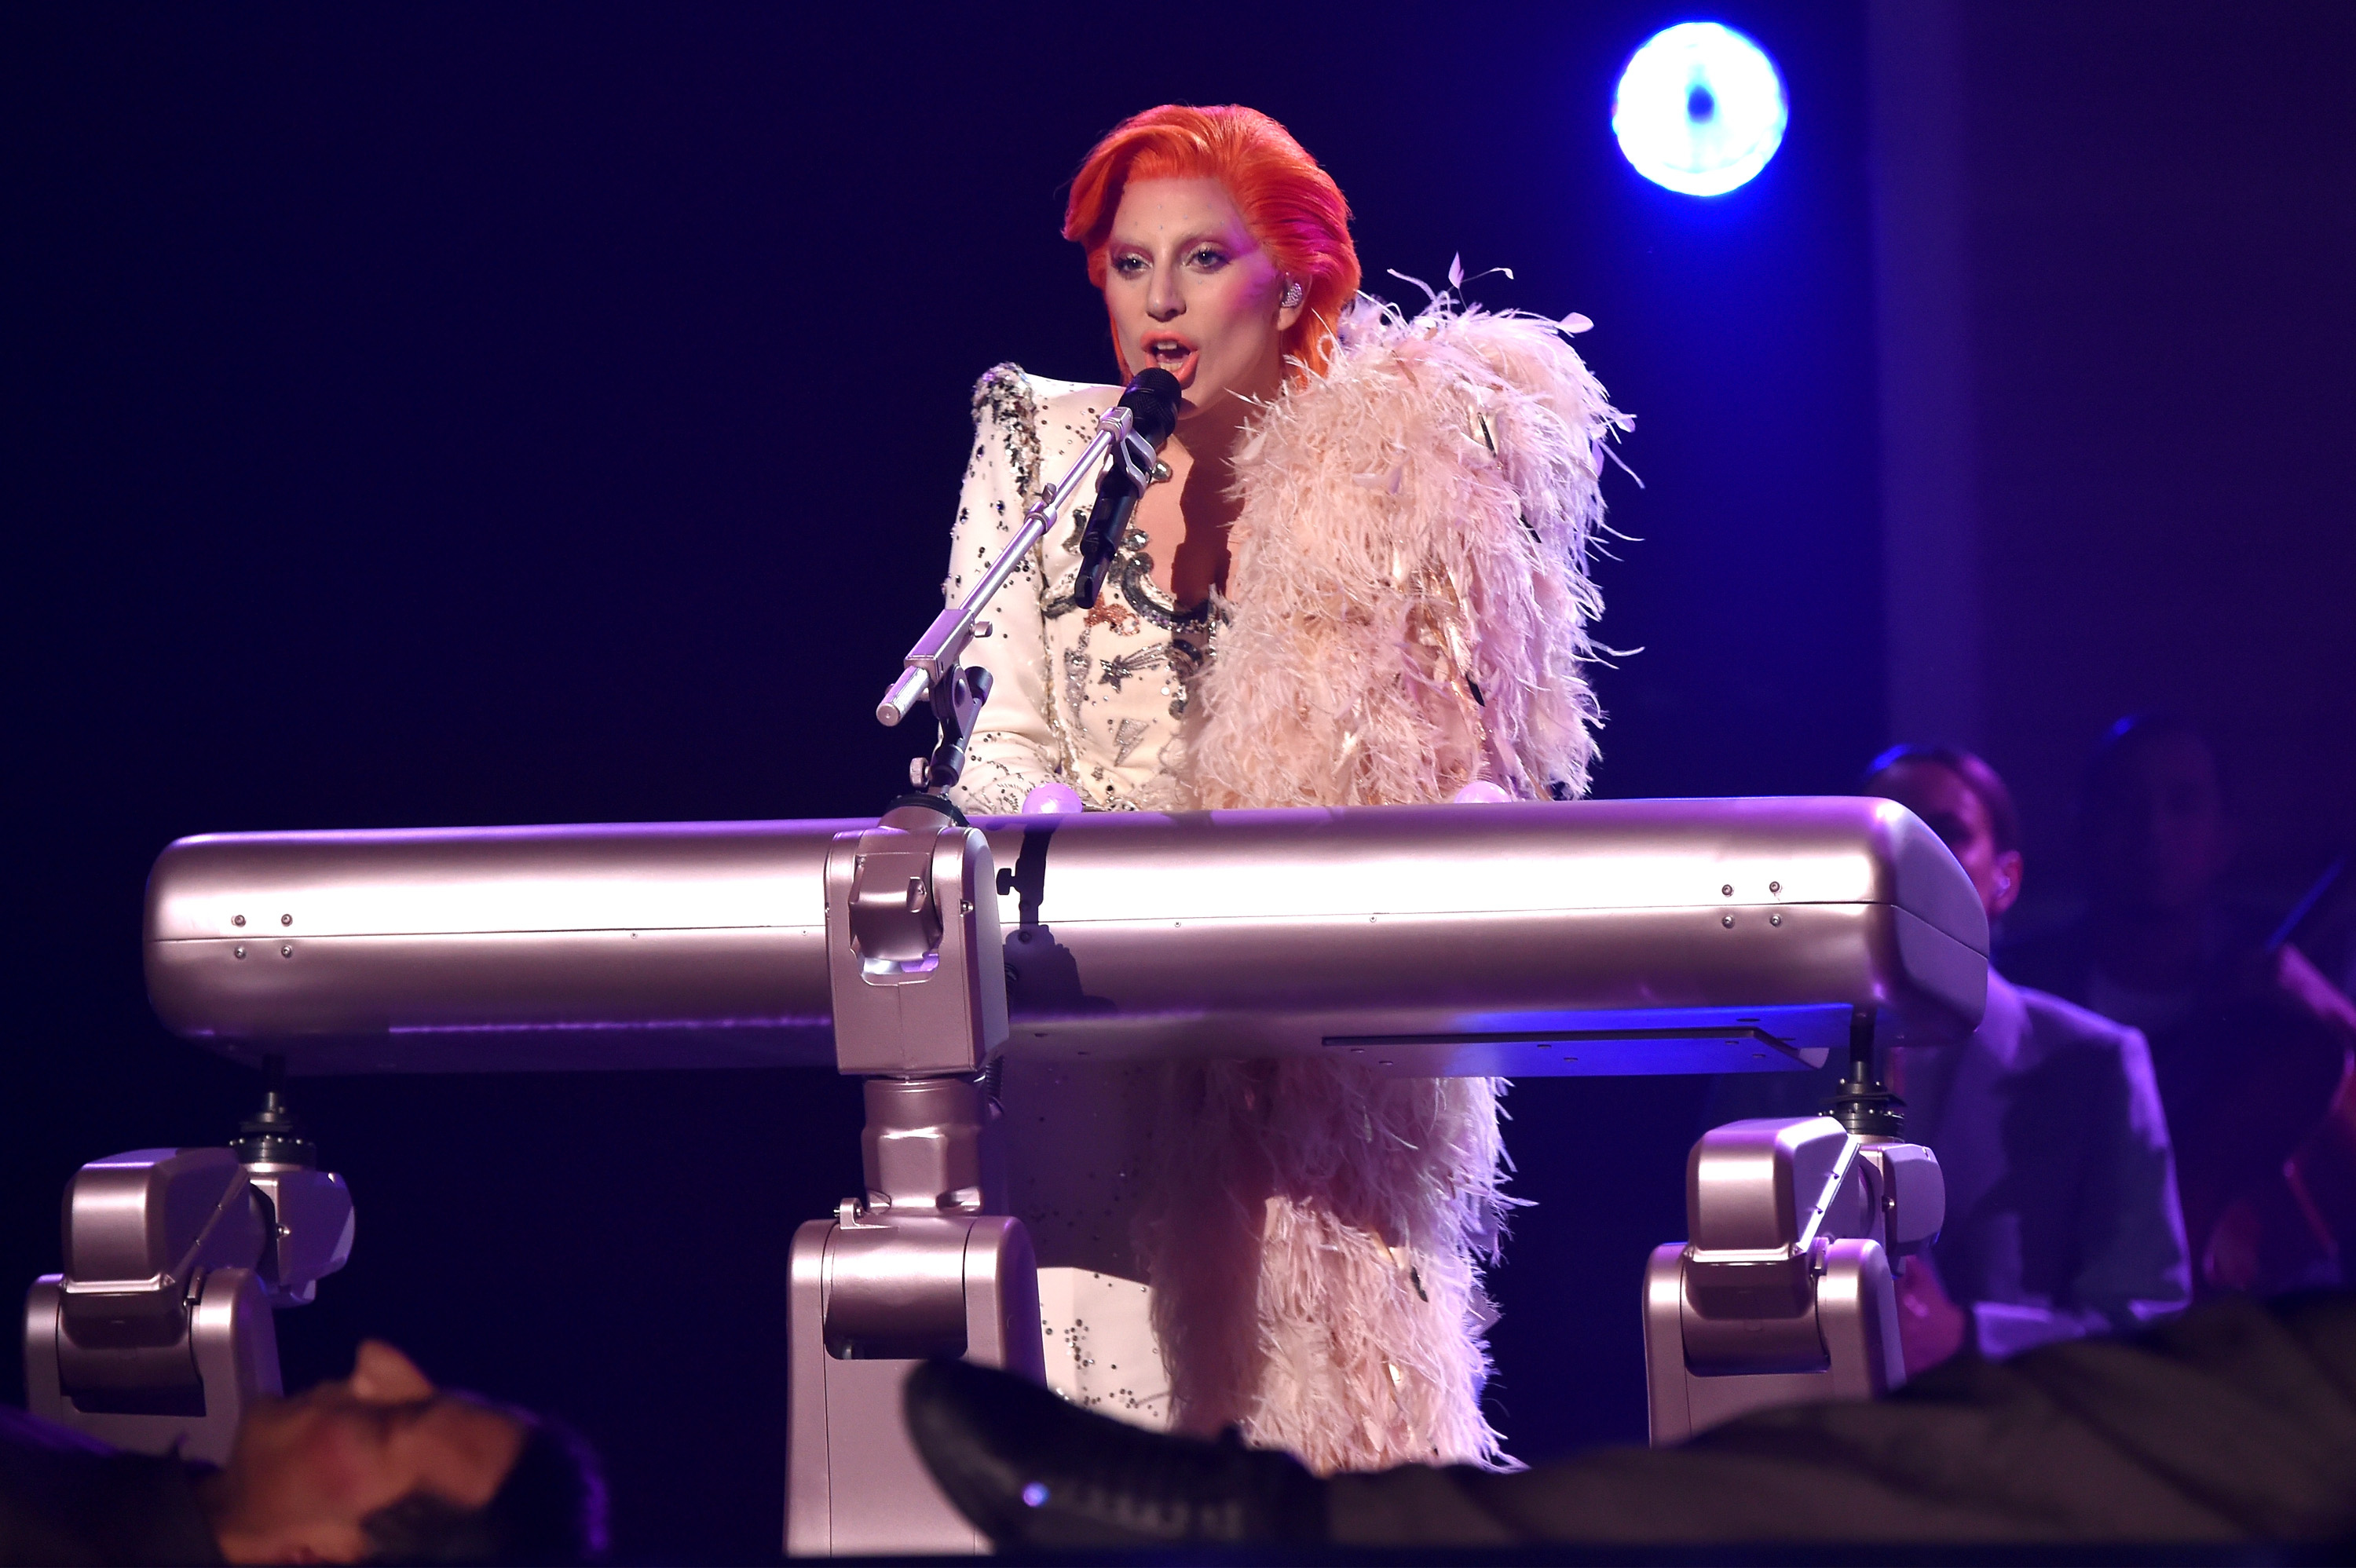 LOS ANGELES, CA - FEBRUARY 15: Singer Lady Gaga performs a tribute to the late David Bowie onstage during The 58th GRAMMY Awards at Staples Center on February 15, 2016 in Los Angeles, California. (Photo by Larry Busacca/Getty Images for NARAS)